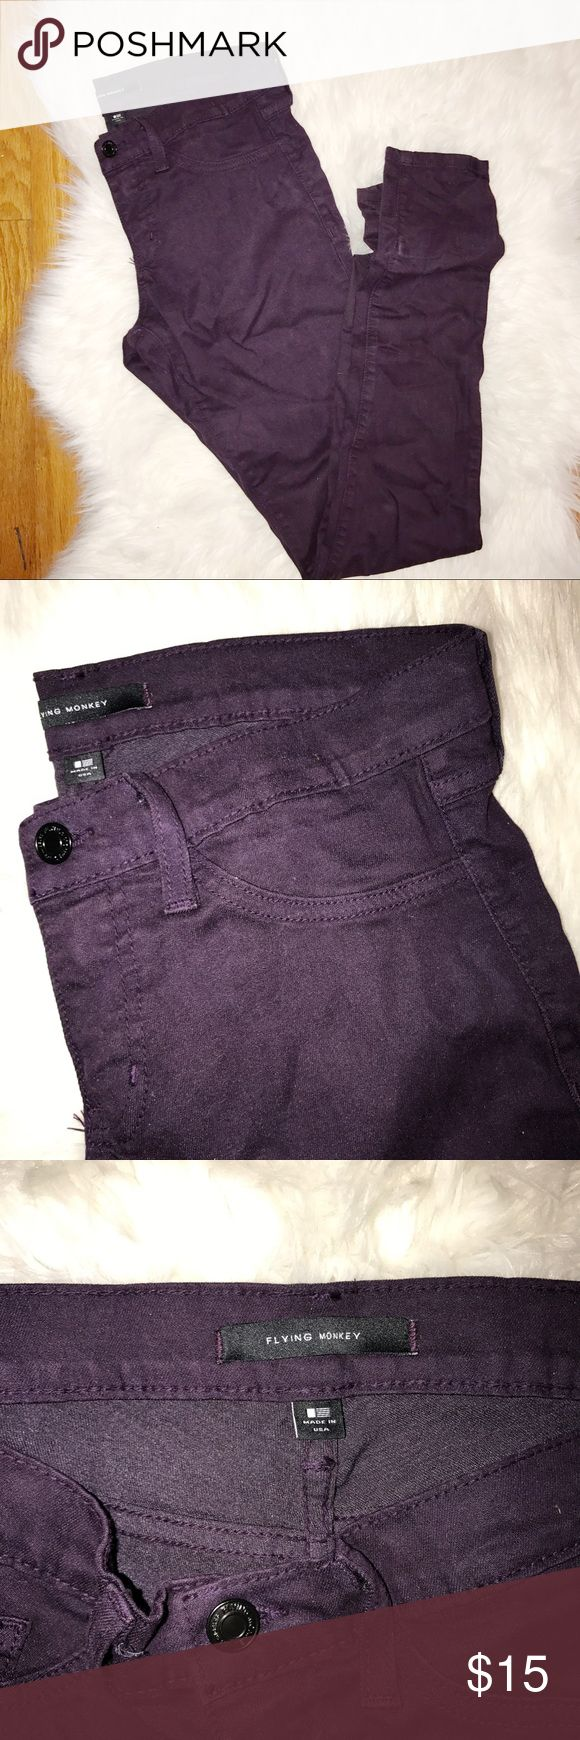 """Flying Monkey Skinny Jeans Flying monkey skinny jeans bought from buckle. Size 28. Inseam 31"""". There are marks near the bottom of the pant leg due to me being super short and needing to roll up the bottom. They do have a stretch go them. Bought for k-state game days but never ended up wearing them! Buckle Jeans Skinny"""